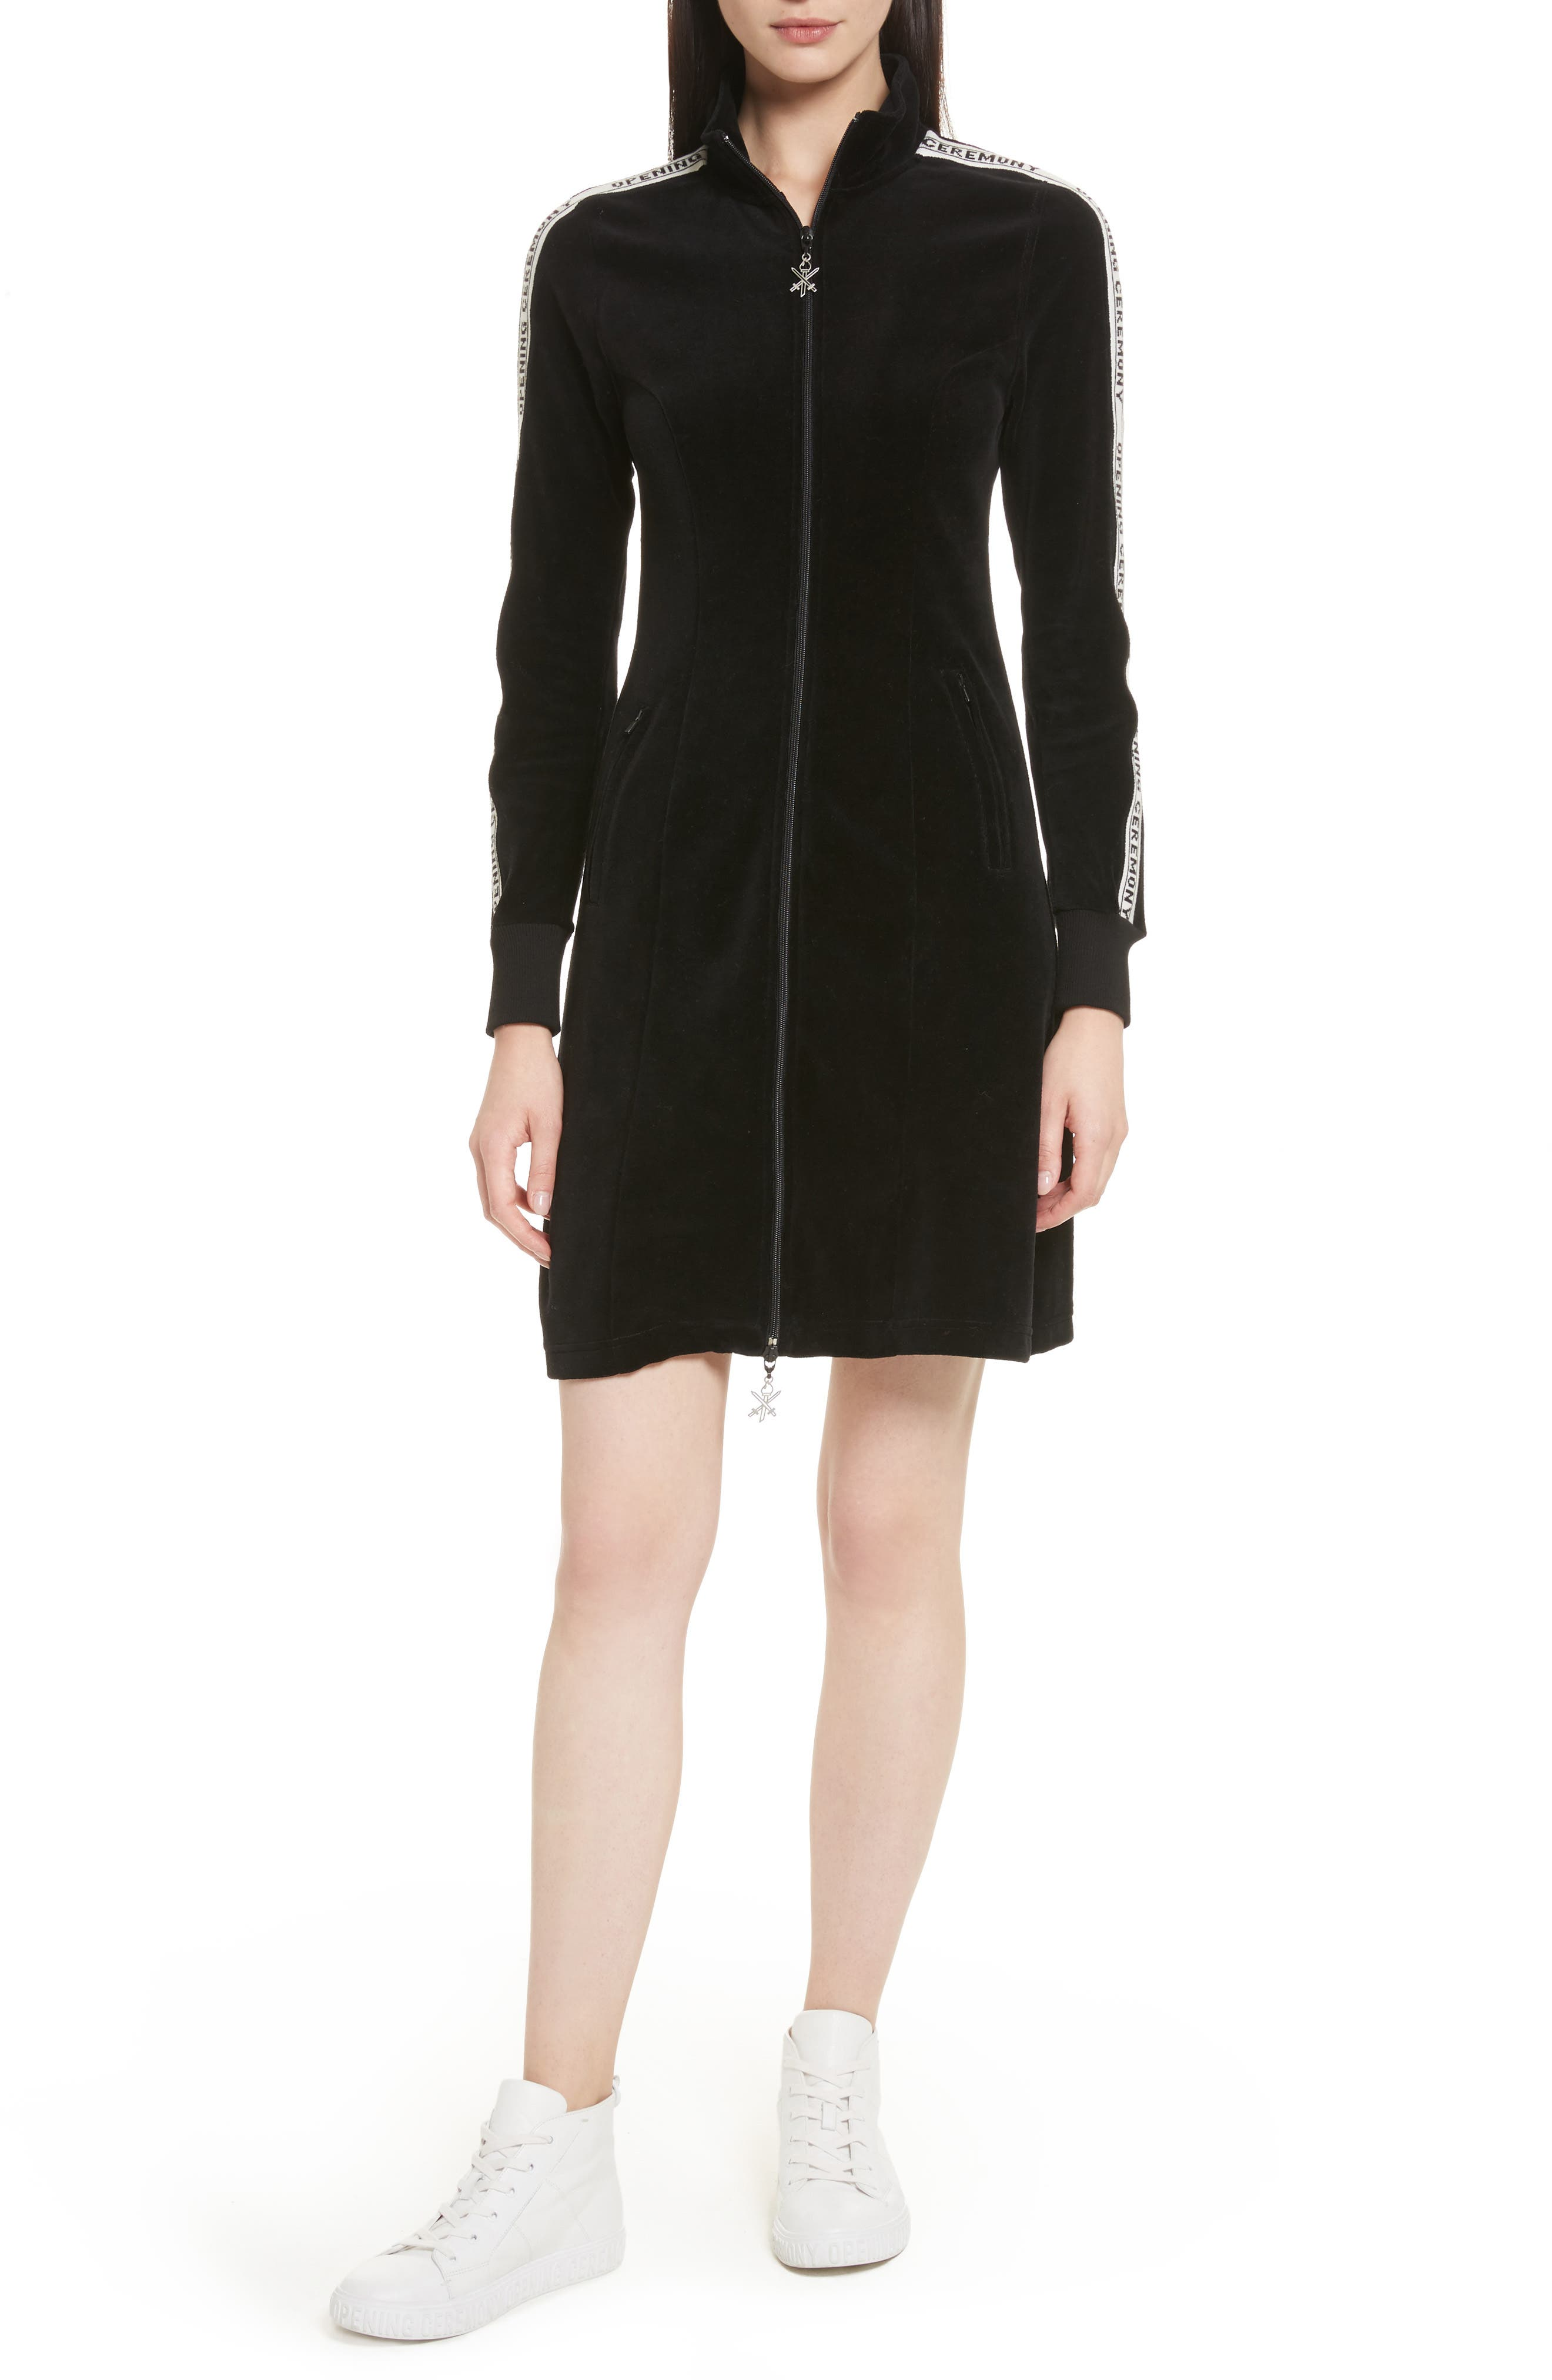 Opening Ceremony Velour Track Dress (Limited Edition)